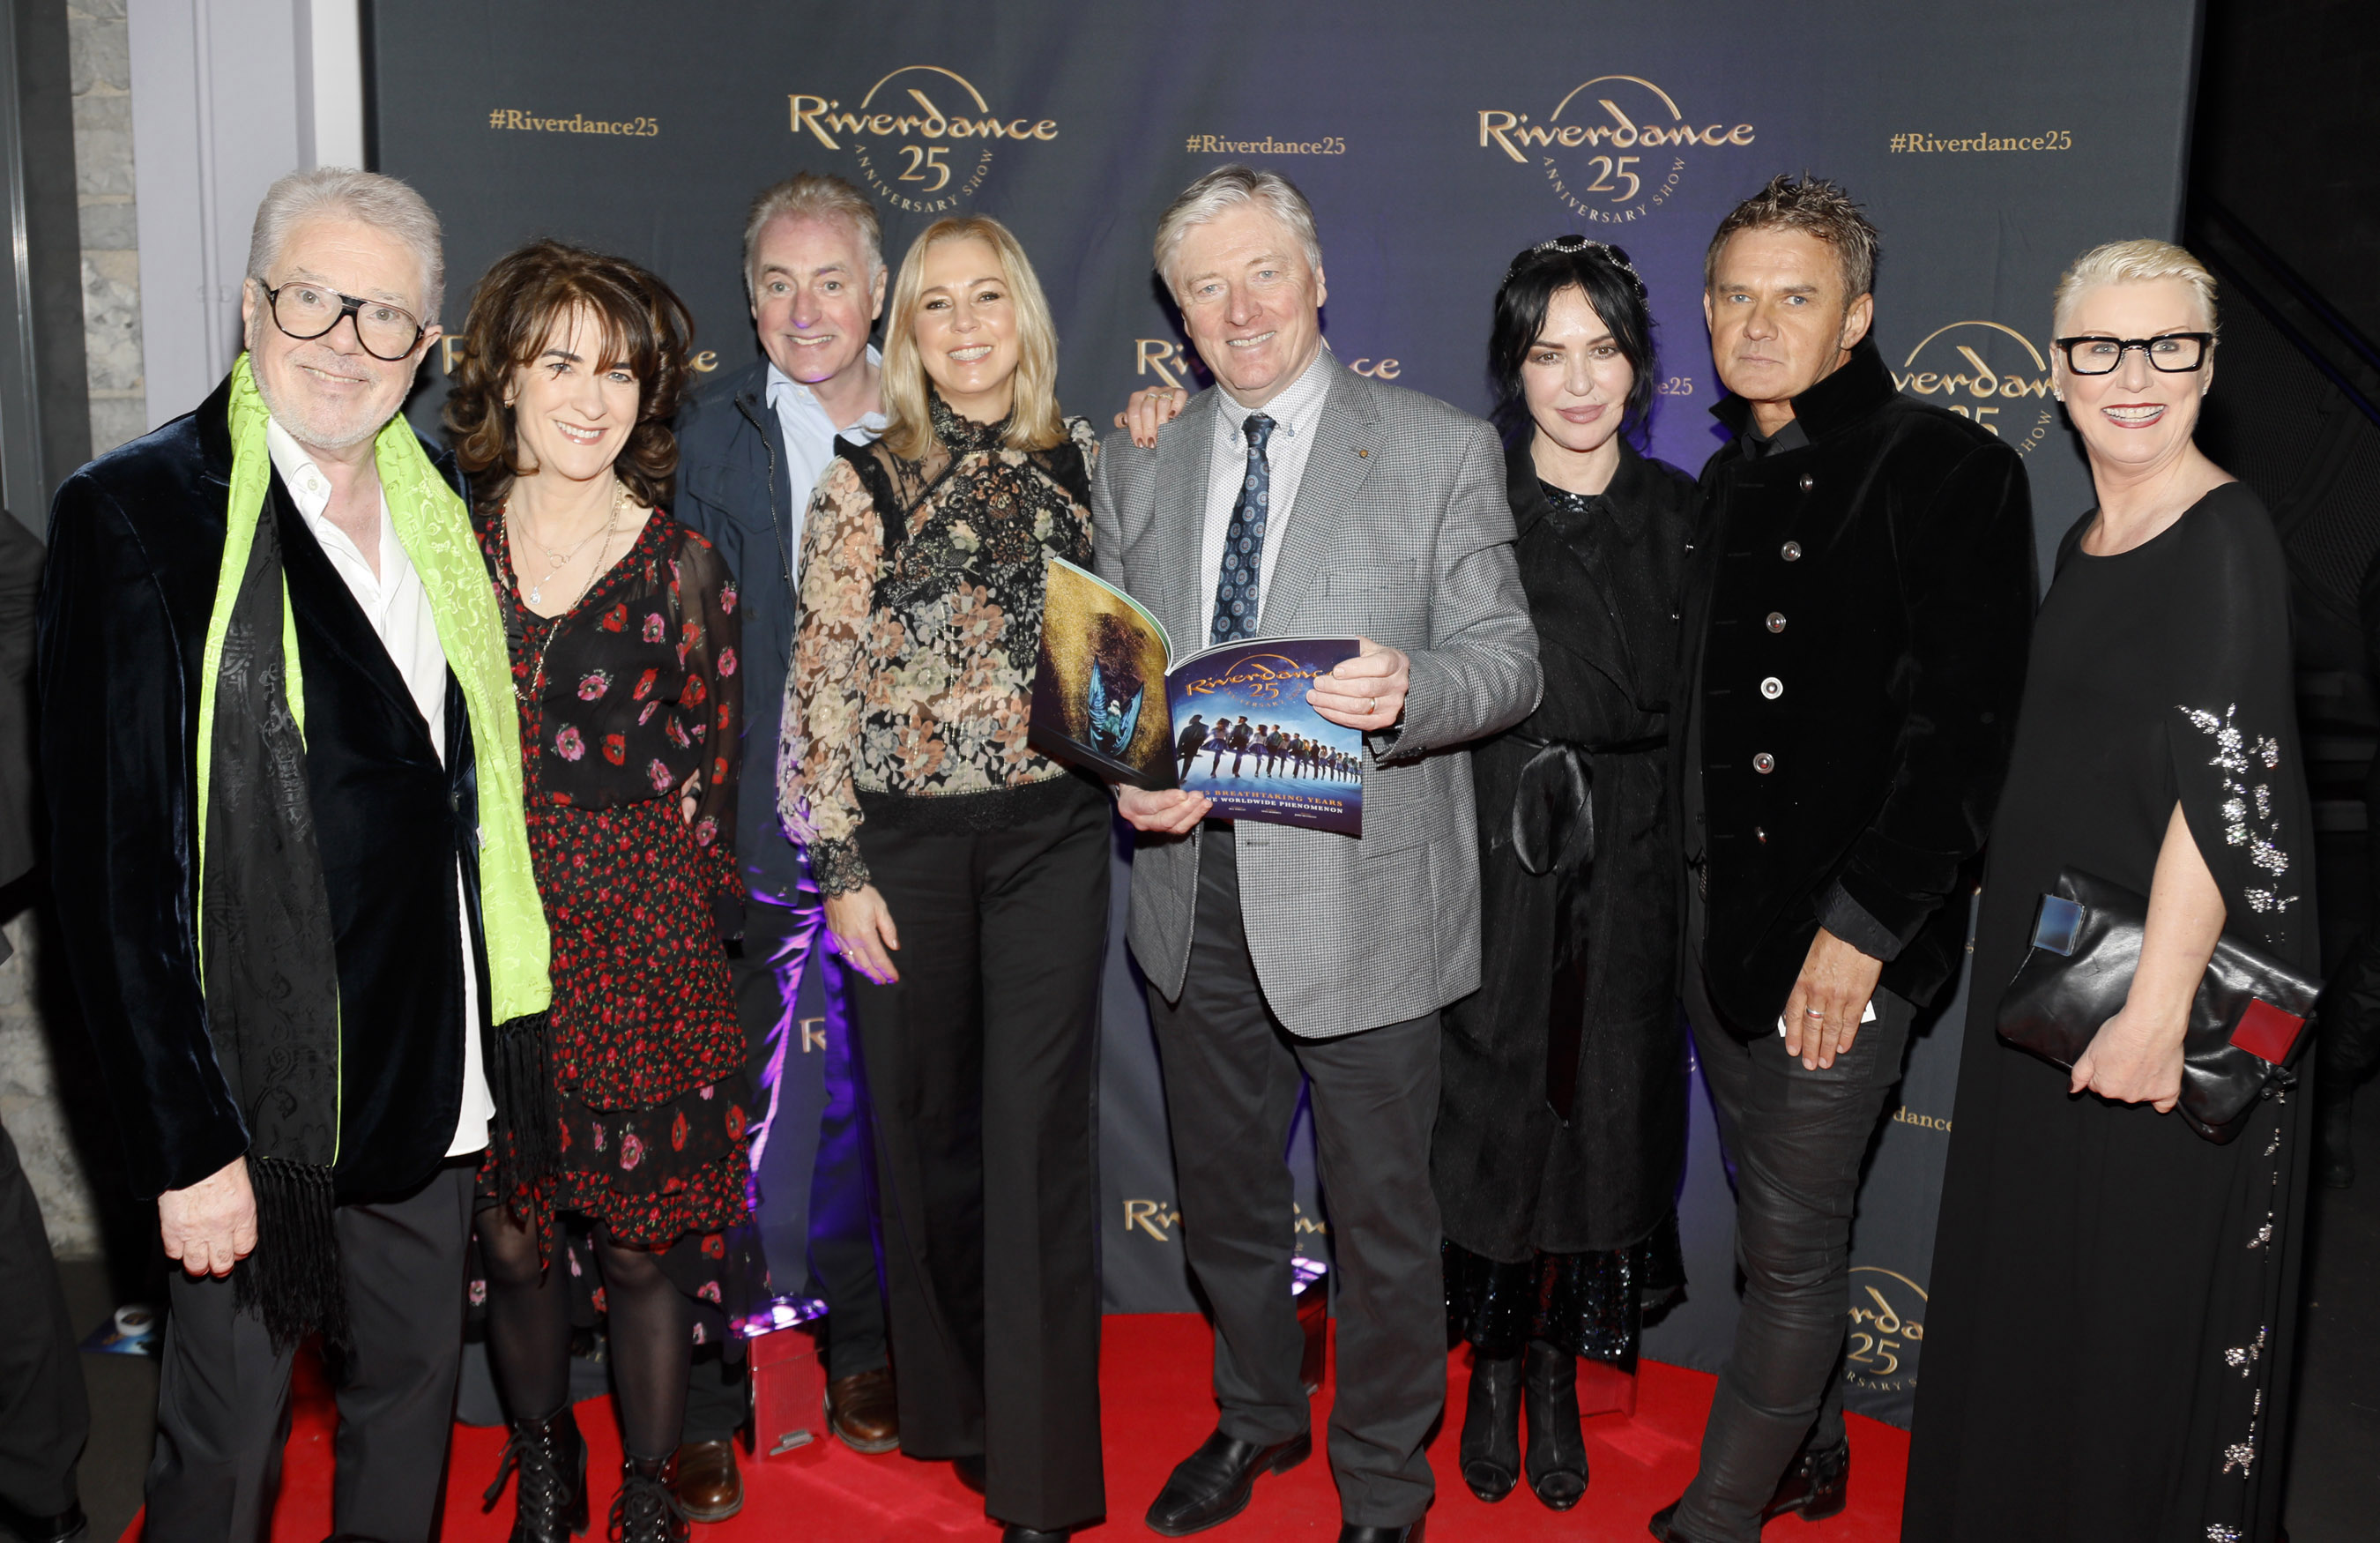 John McColgan, Ursula and Dave Fanning, Kathy and Pat Kenny, Morah Ryan, Don Mescall and Moya Doherty at the historic gala performance of Riverdance 25th Anniversary show at 3Arena Dublin exactly 25 years to the day that Riverdance was first performed at the Point Depot.  Photo: Kieran Harnett